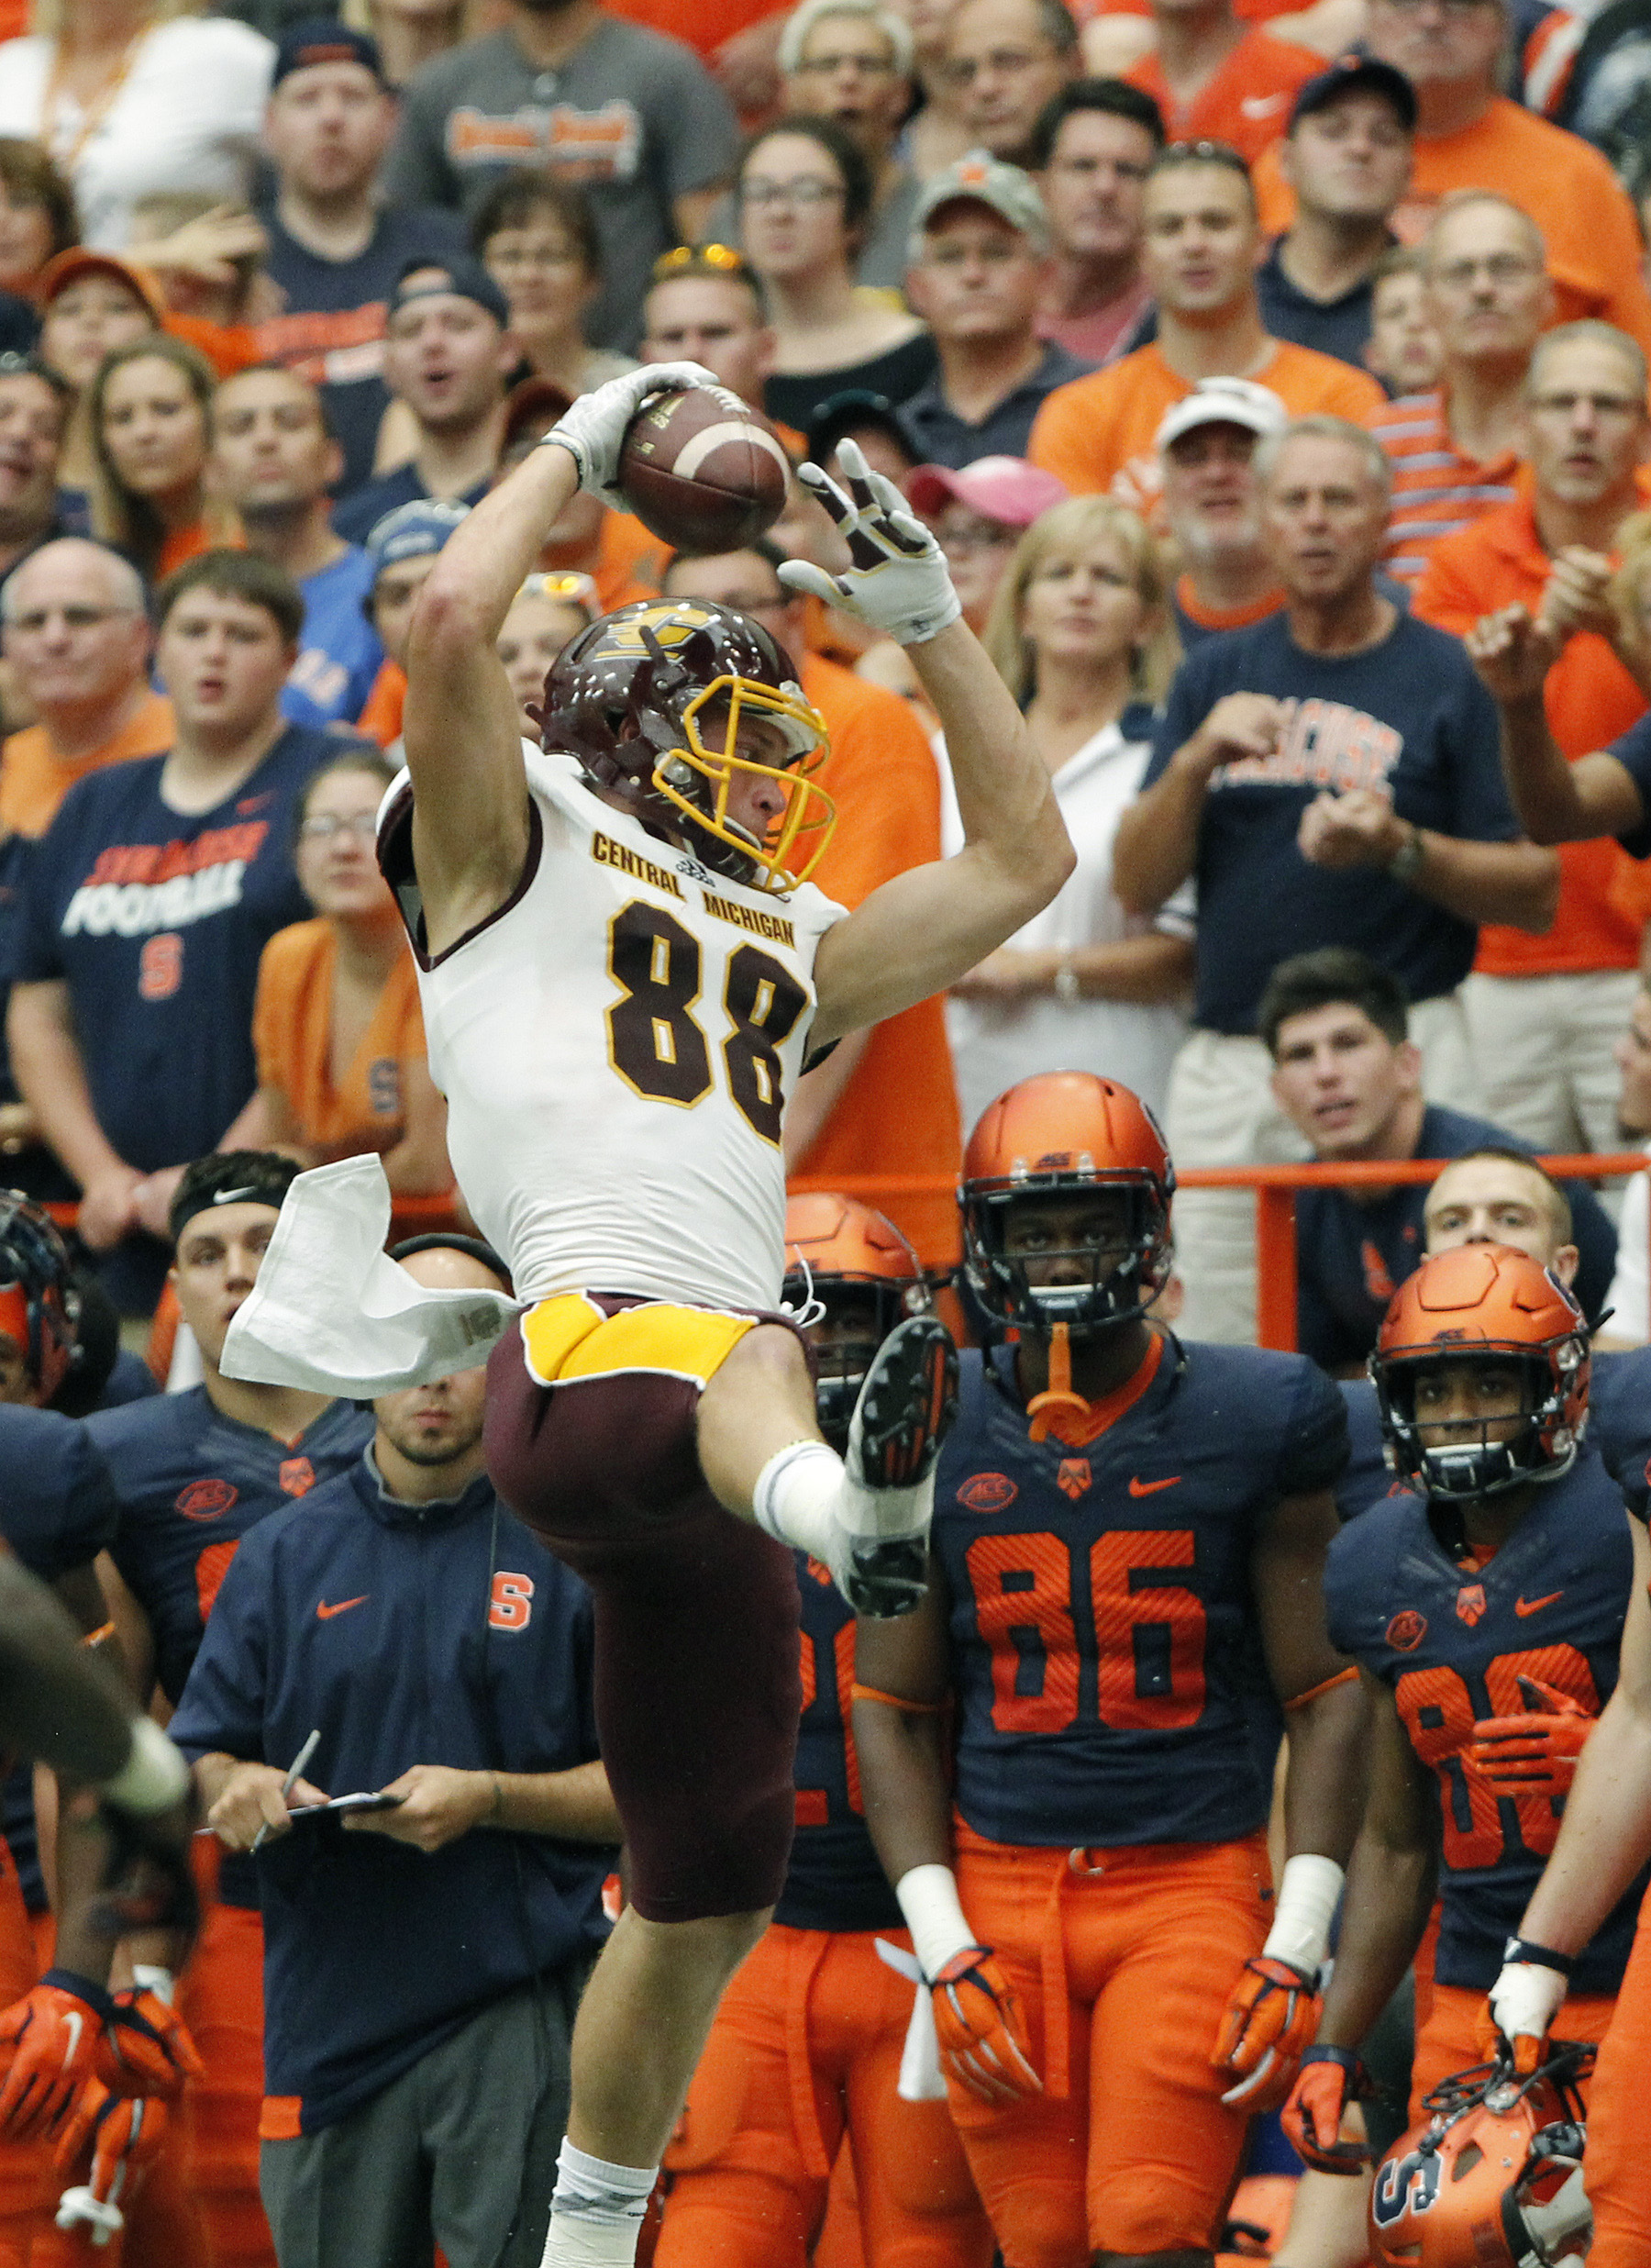 Central Michigan's Jesse Knoll makes a catch near the Syracuse bench in the second half of an NCAA college football game in Syracuse, N.Y., Saturday, Sept. 19, 2015. Syracuse won 30  27. (AP Photo/Nick Lisi)